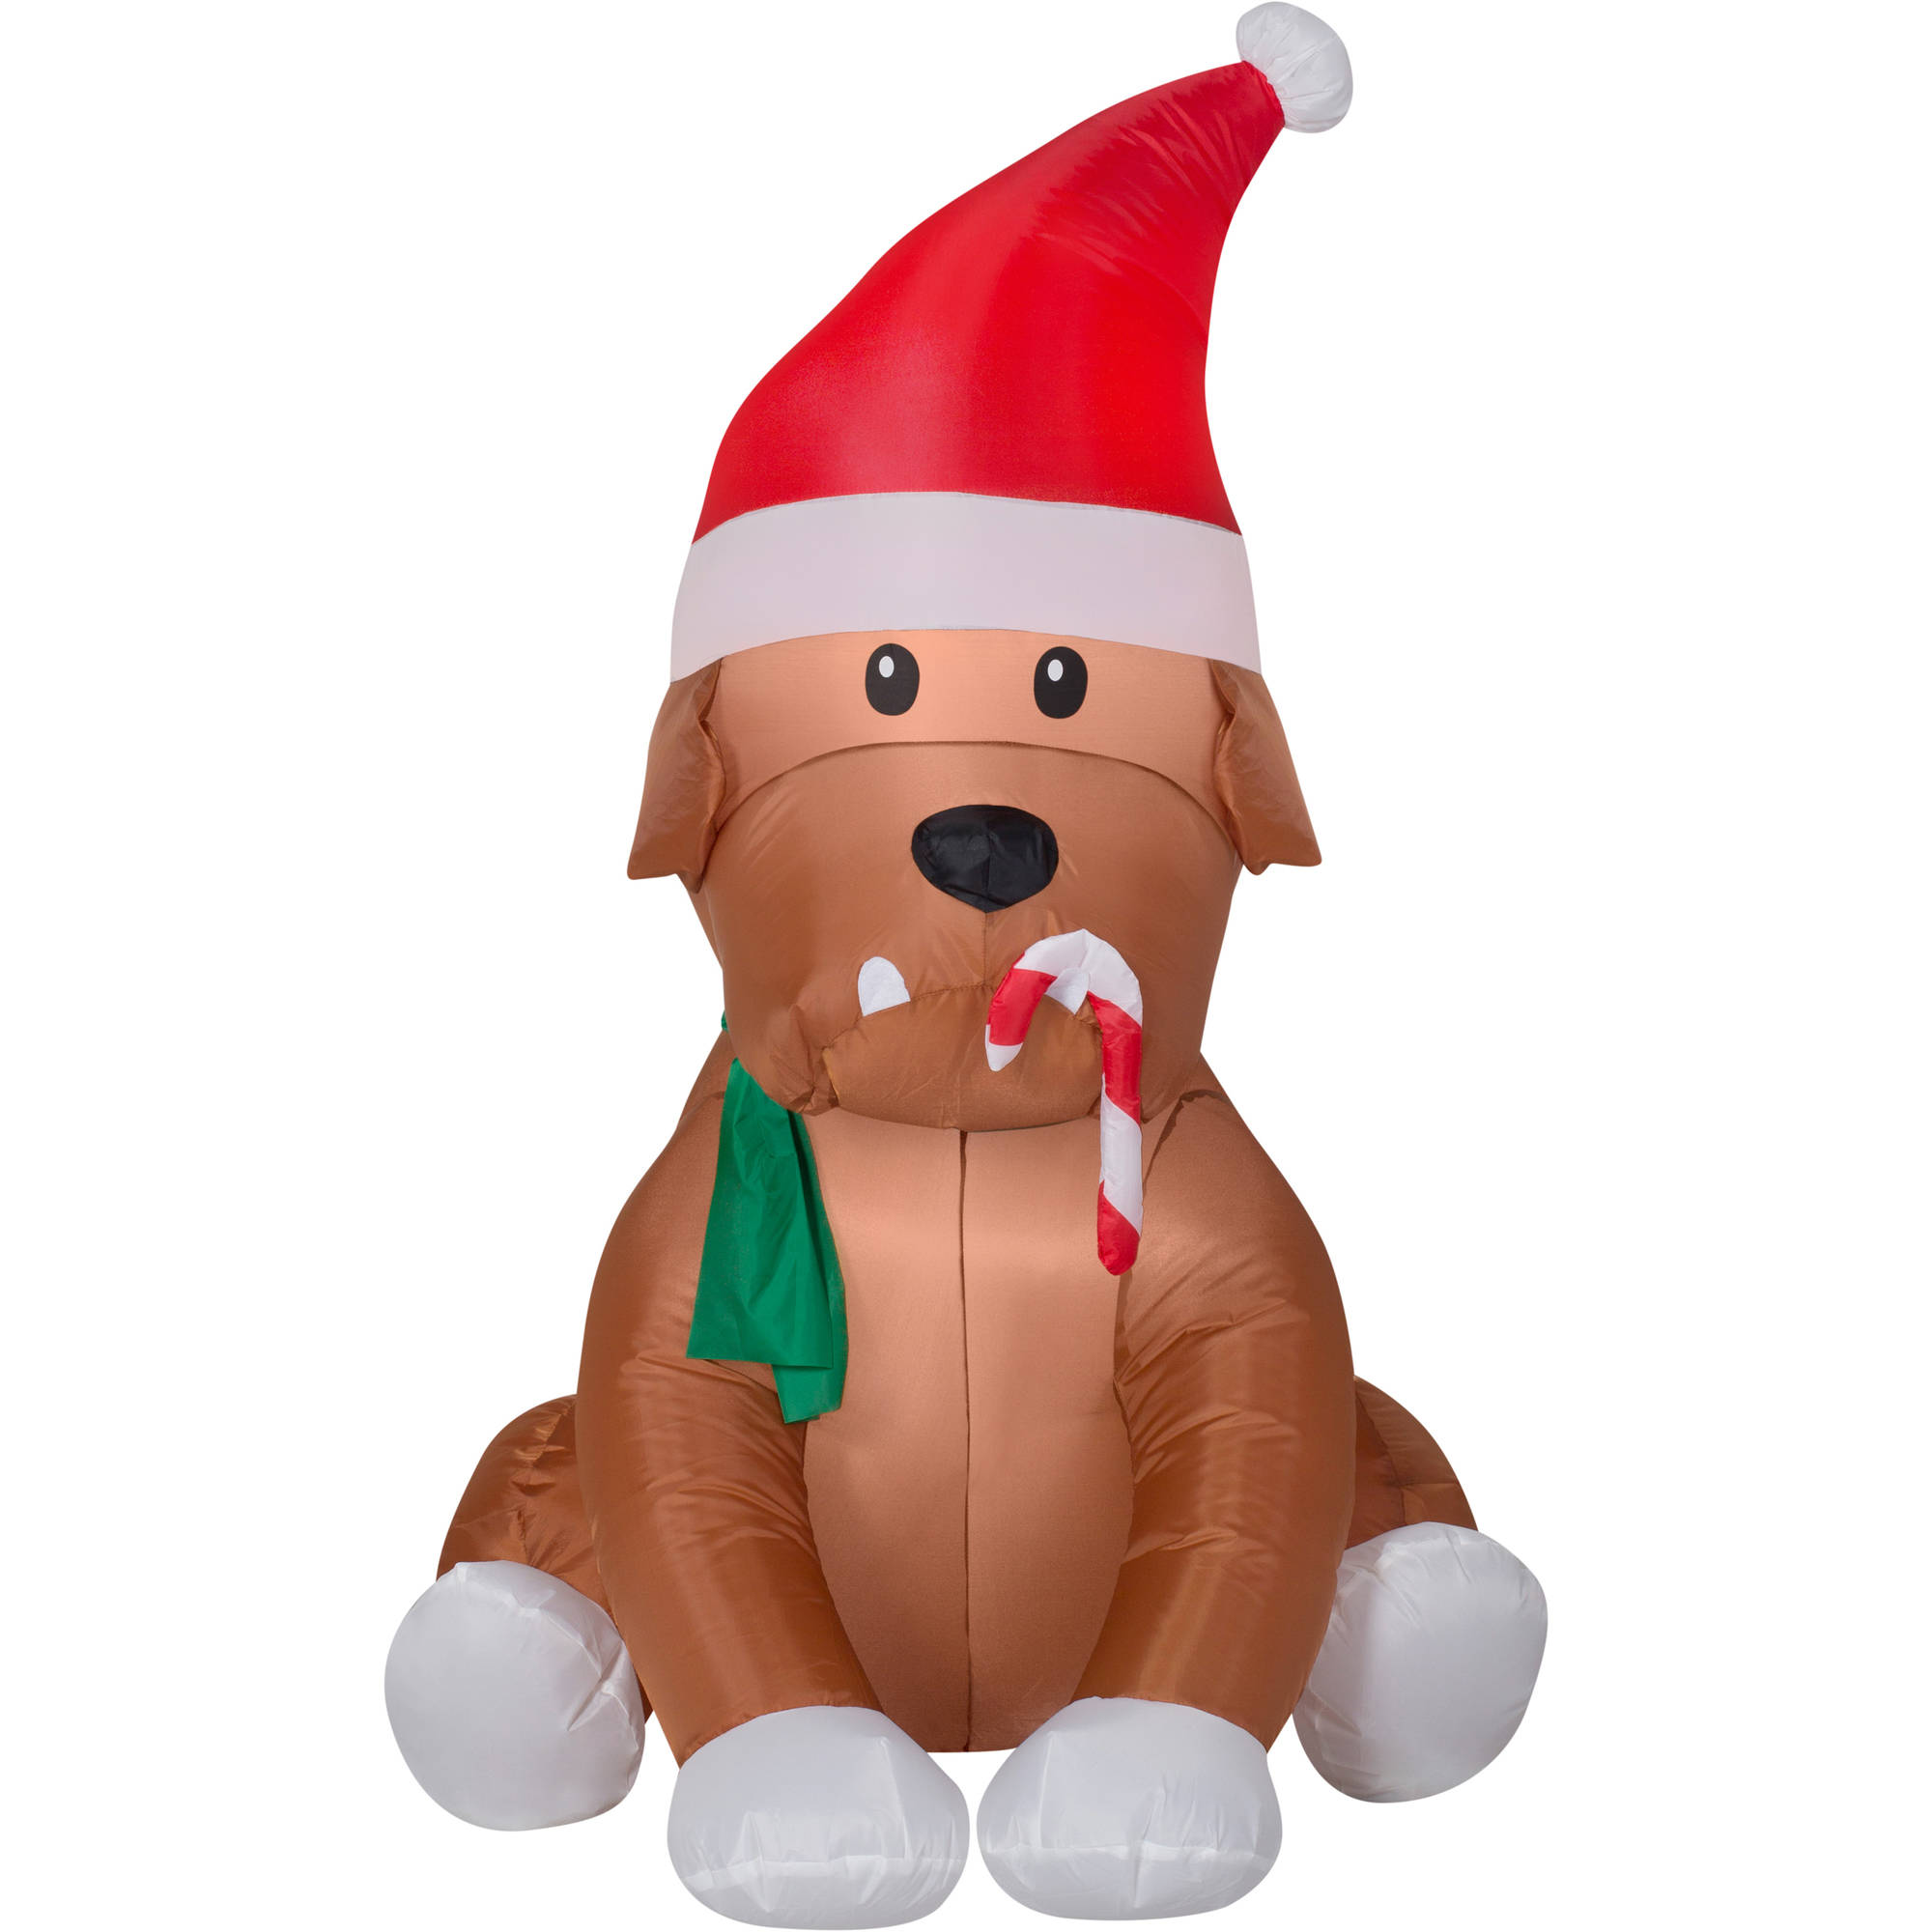 Gemmy Airblown Christmas Inflatables English Bulldog, 4' - Walmart.com